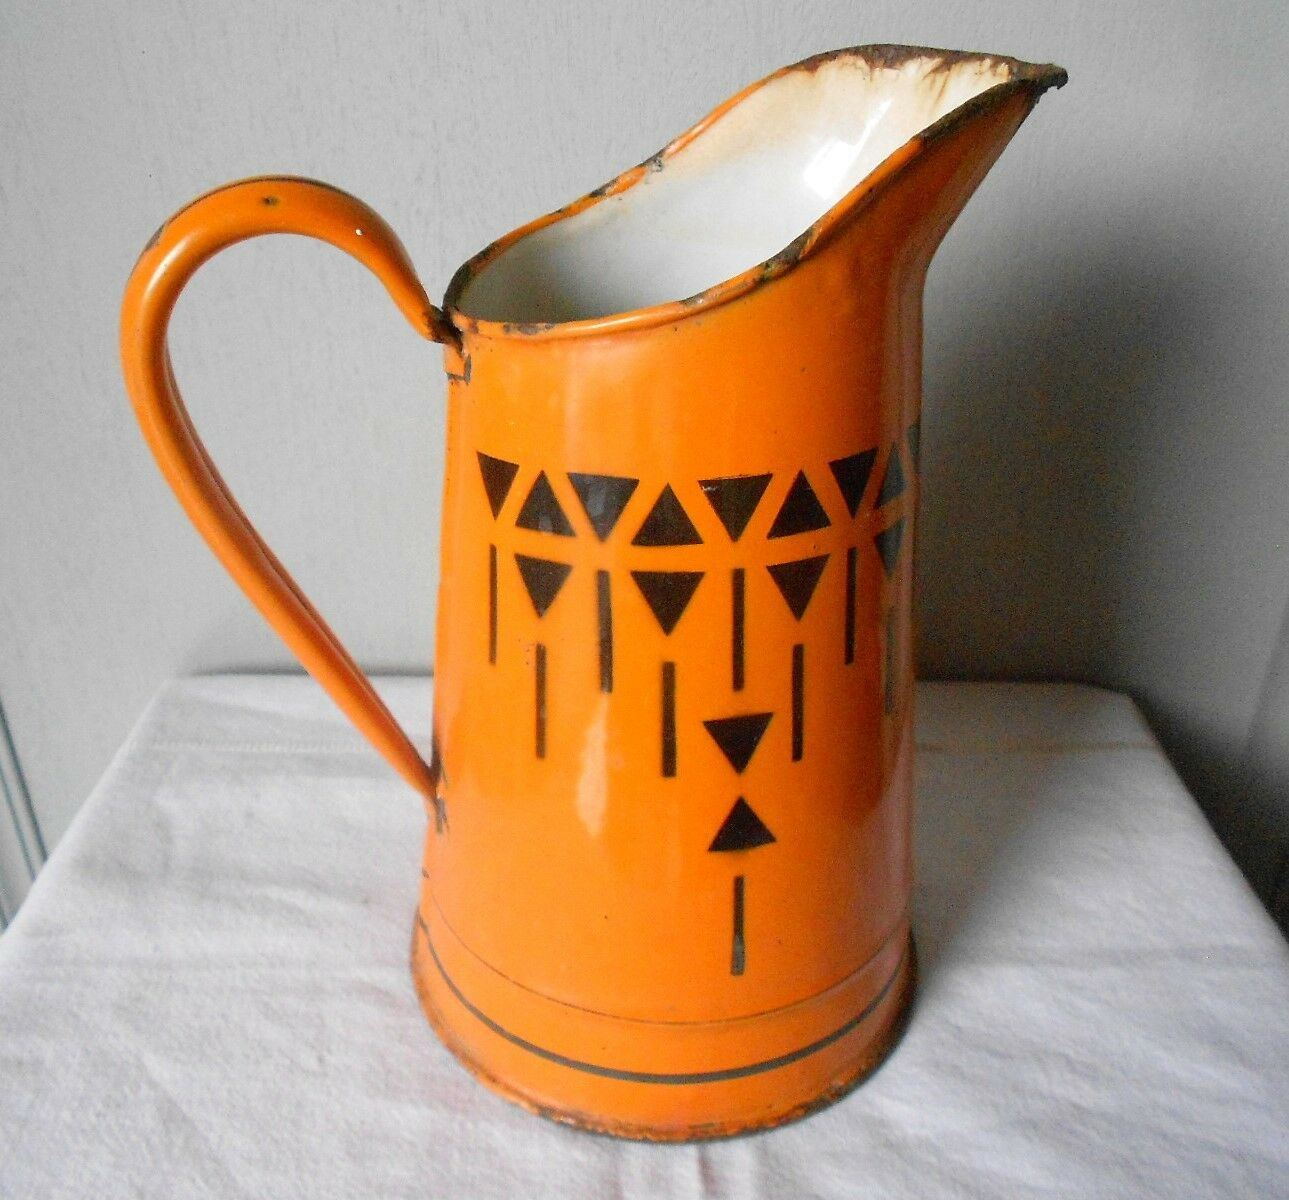 Antique ART DECO ENAMELWARE Body Pitcher black pattern